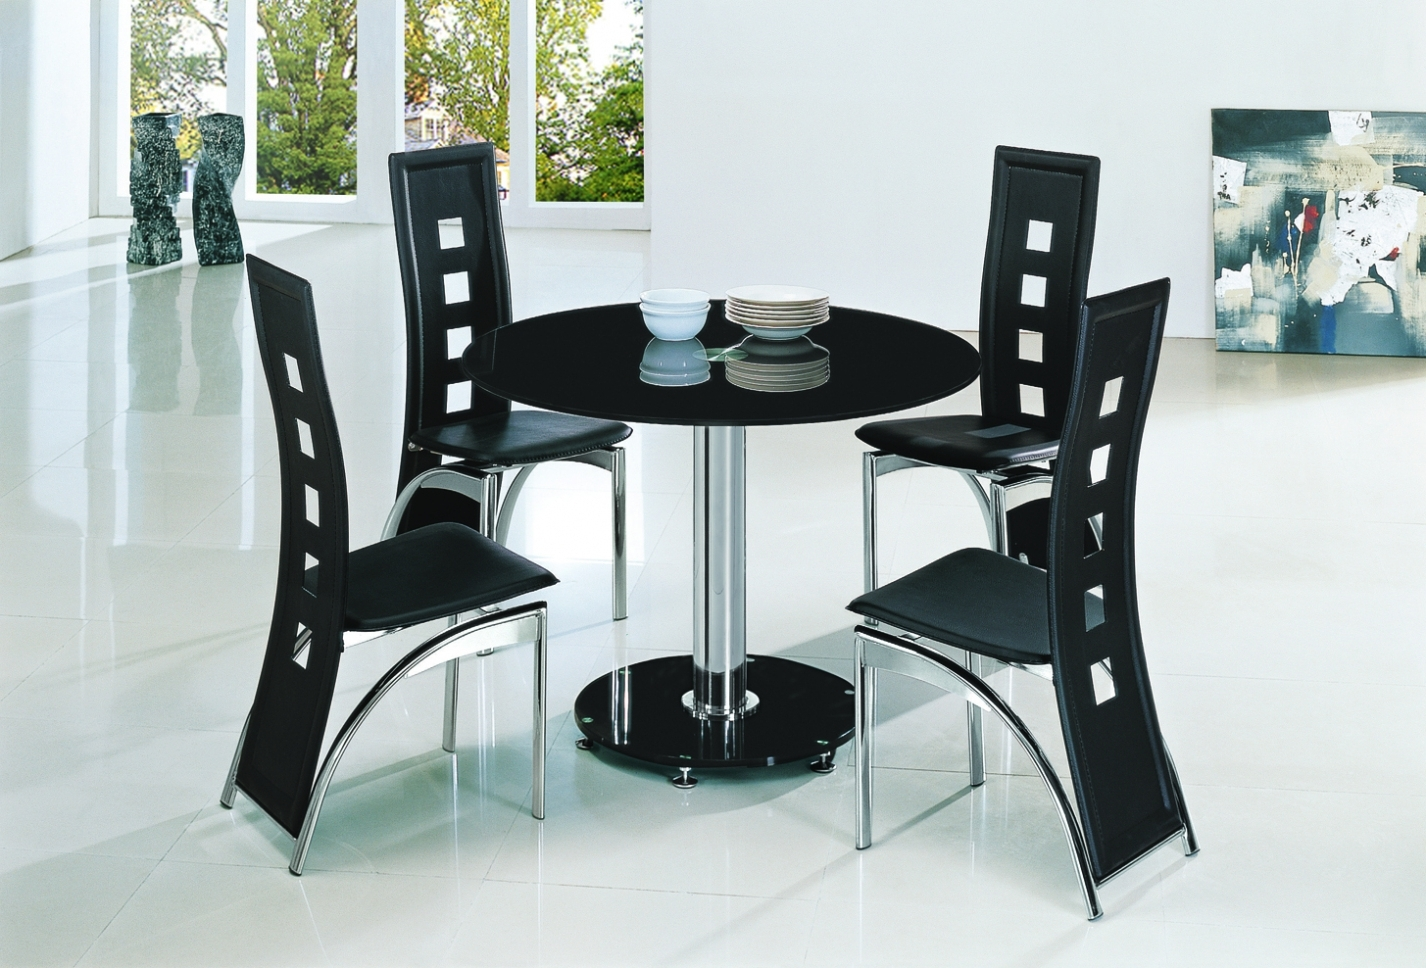 Most Recent Round Black Glass Dining Tables And 4 Chairs For Dining: Planet Black Round Glass Dining Table With Alison Chairs (View 15 of 25)